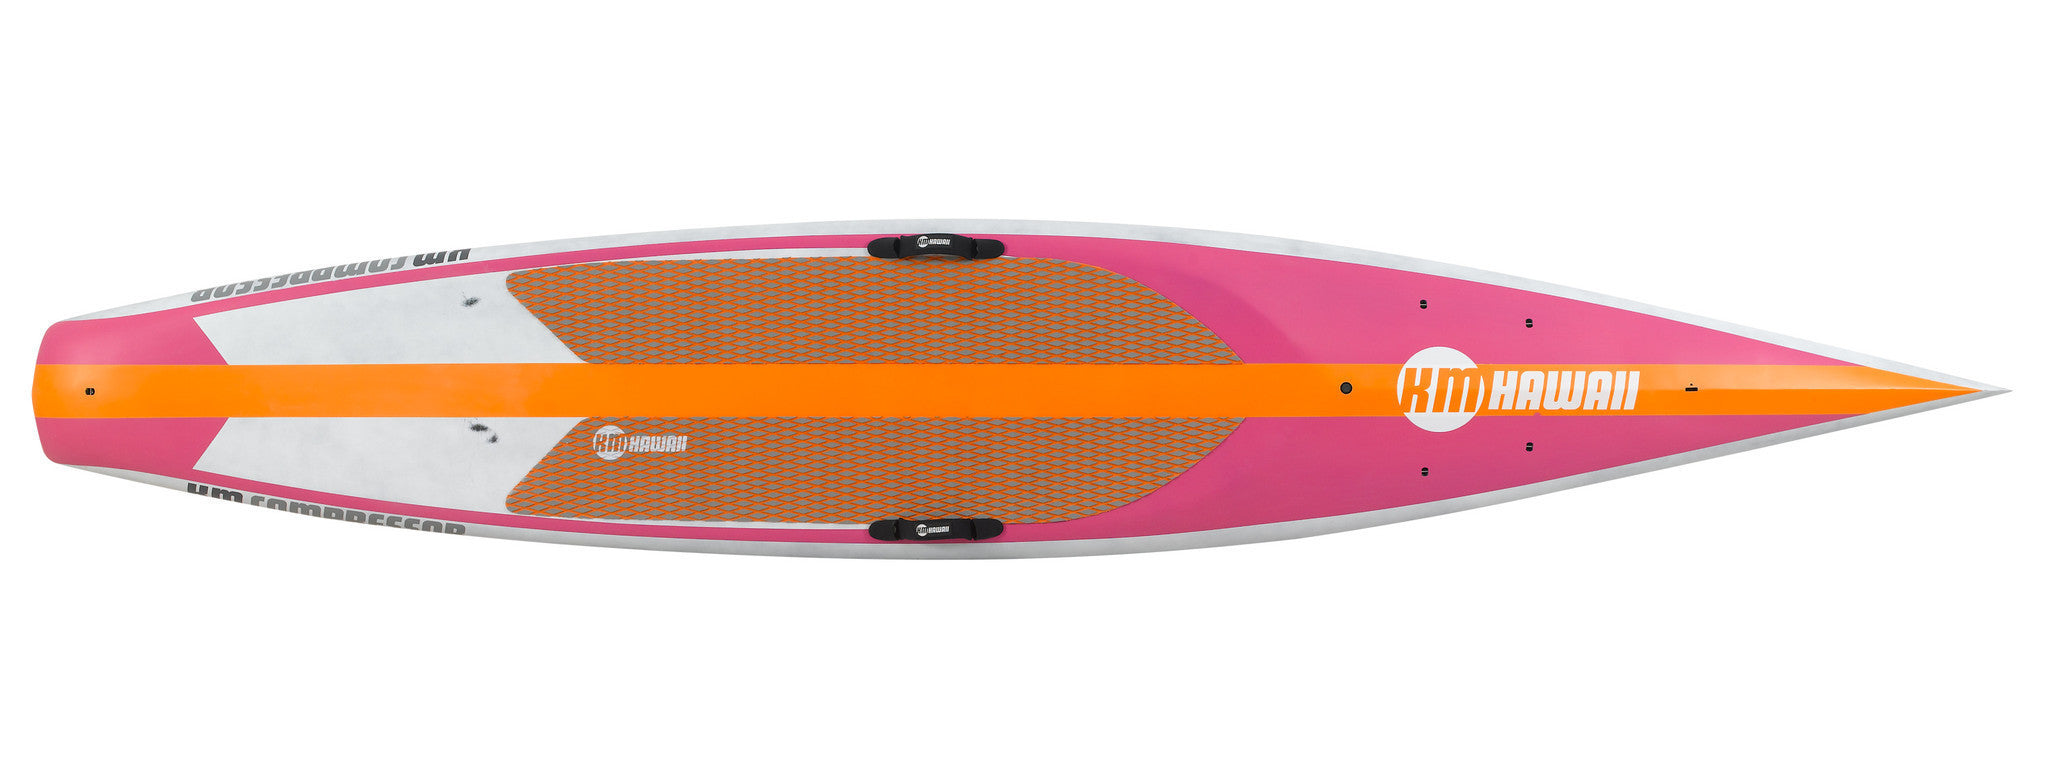 KM Hawaii Compressor HP / On Sale from $1585 / Use Code CARBON55 / Regularly -  - Stand Up Paddle Board - SUP Outdoor - 2